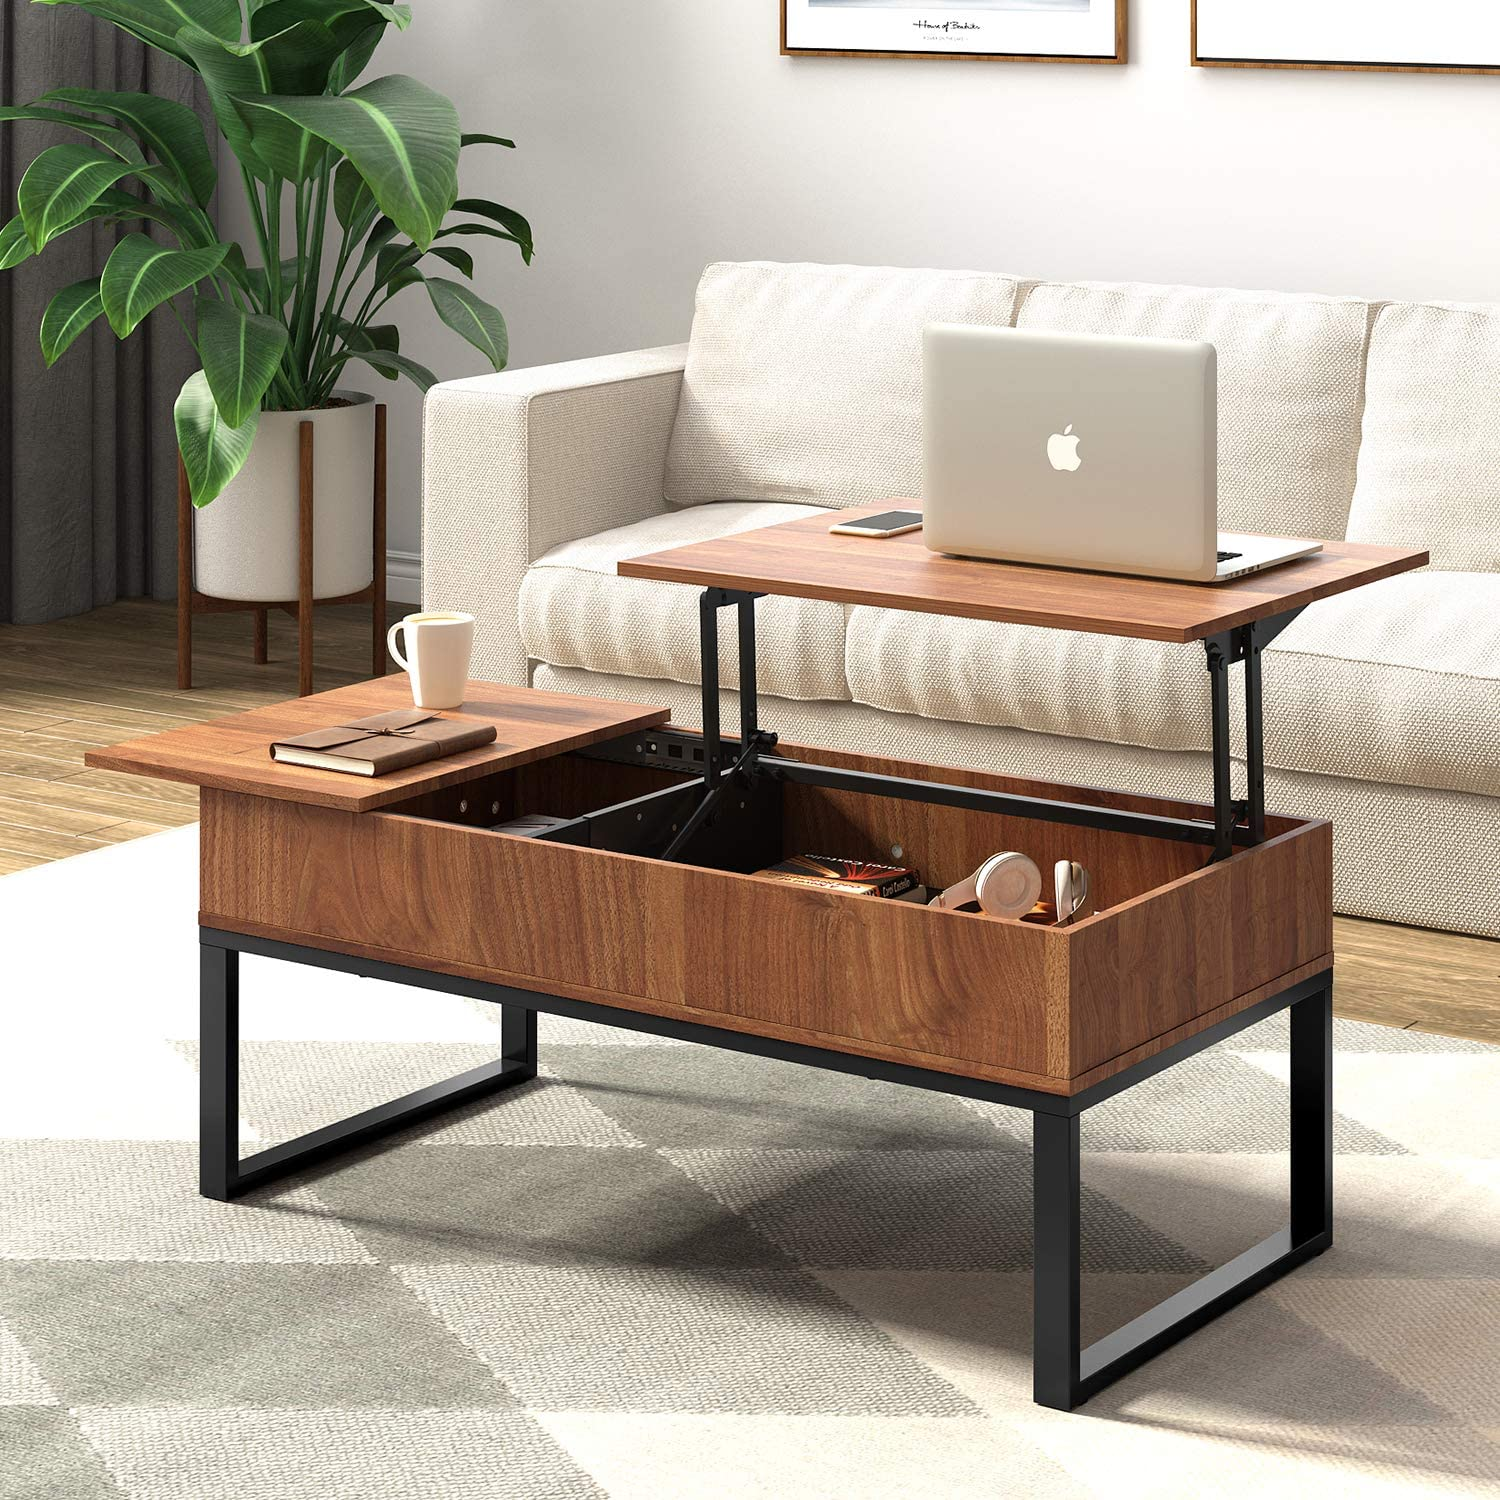 10 Best Lift Top Coffee Tables In 2020 Updated Guide